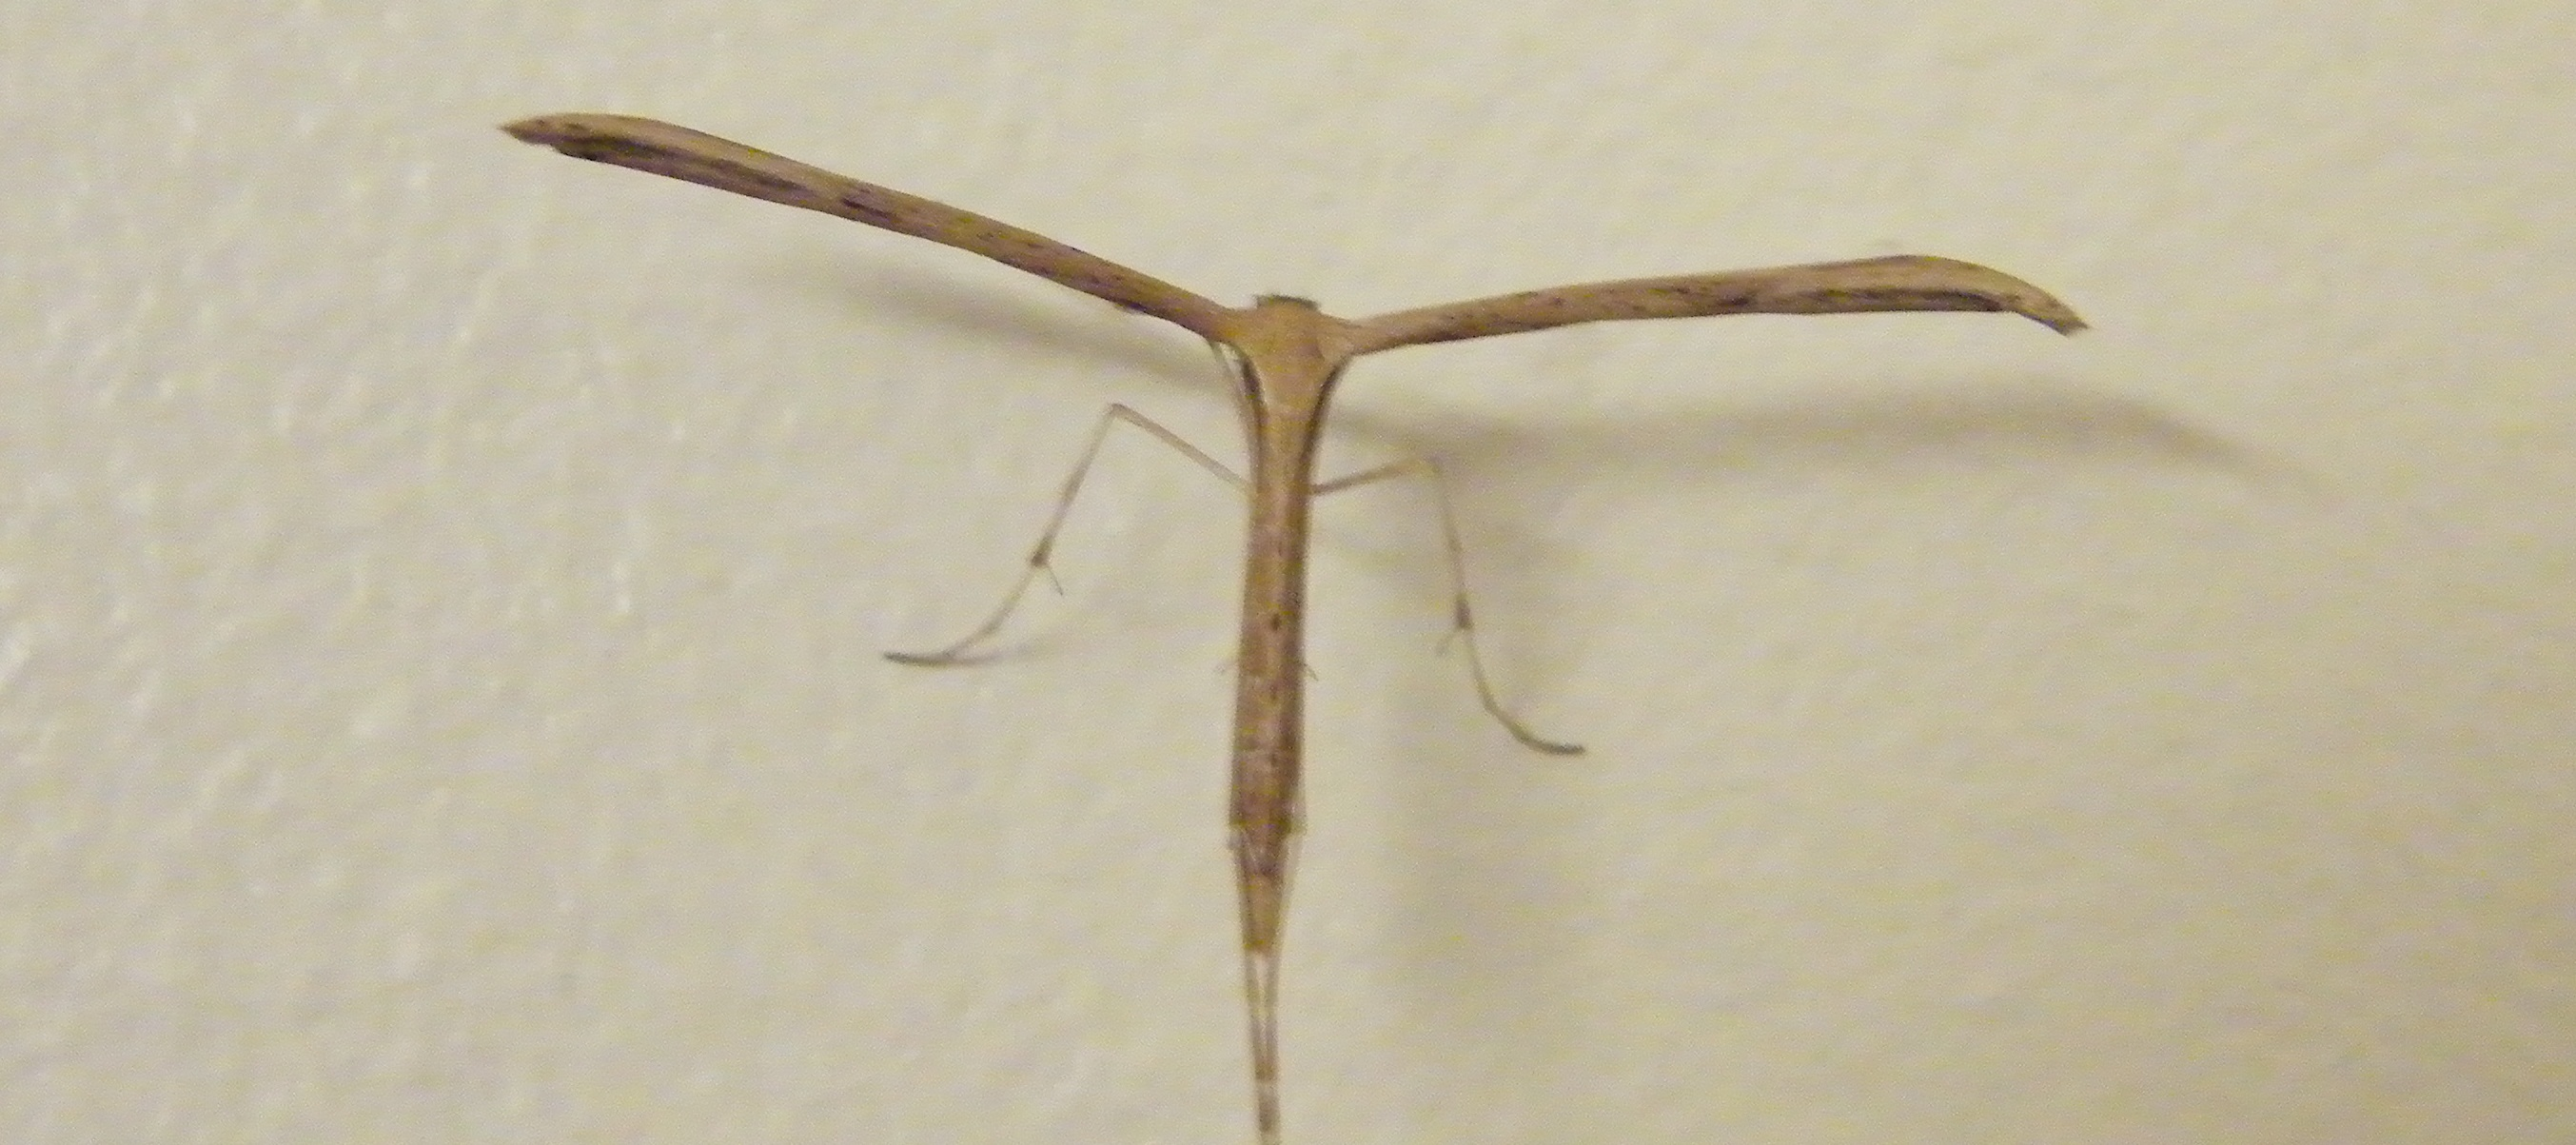 Moth in Kitchen, 1 Nov